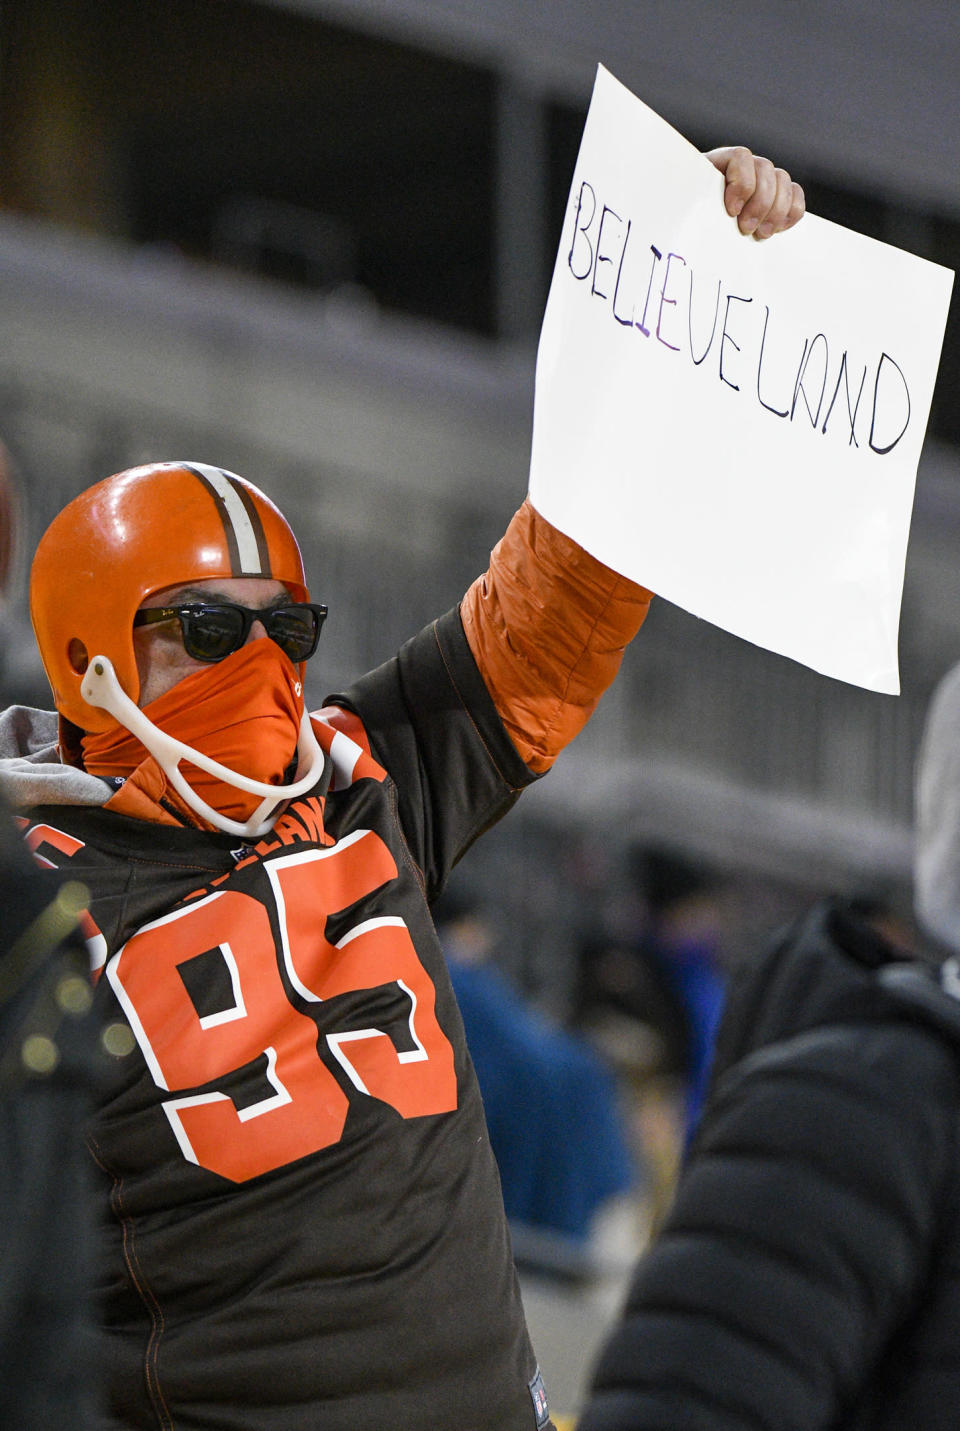 CORRECTS TIME OF PHOTO TO LATE SUNDAY, JAN. 10 INSTEAD OF EARLY MONDAY, JAN. 11 - A Cleveland Browns fan holds a sign after an NFL wild-card playoff football game between the Pittsburgh Steelers and the Cleveland Browns in Pittsburgh, late Sunday, Jan. 10, 2021. The Browns won 48-37. (AP Photo/Don Wright)